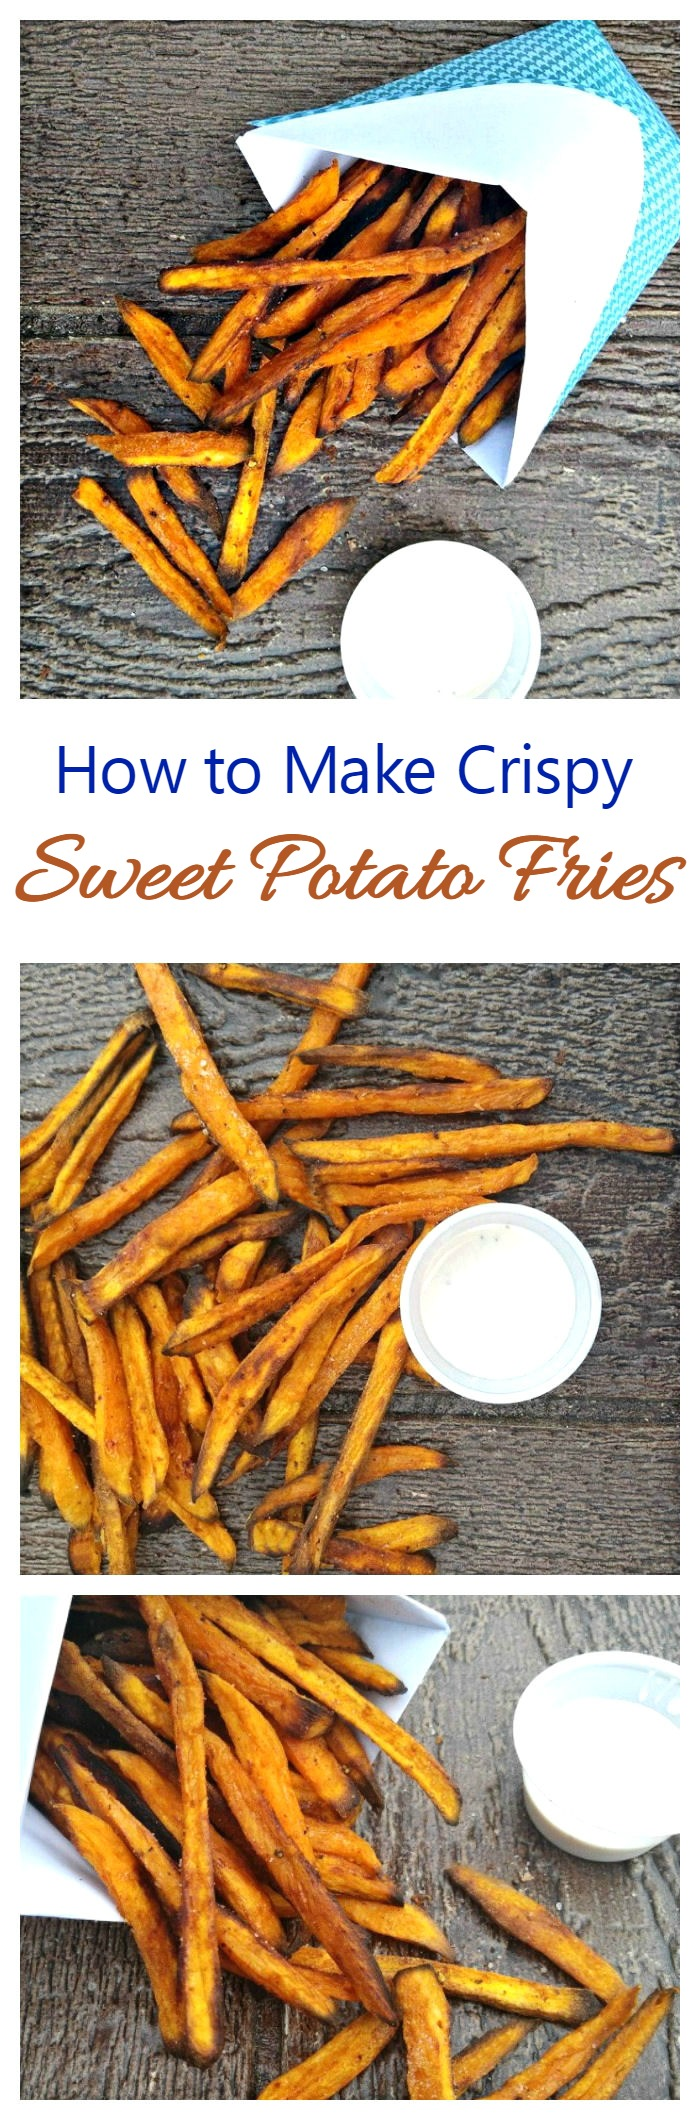 How to Crispy Sweet Potato Fries